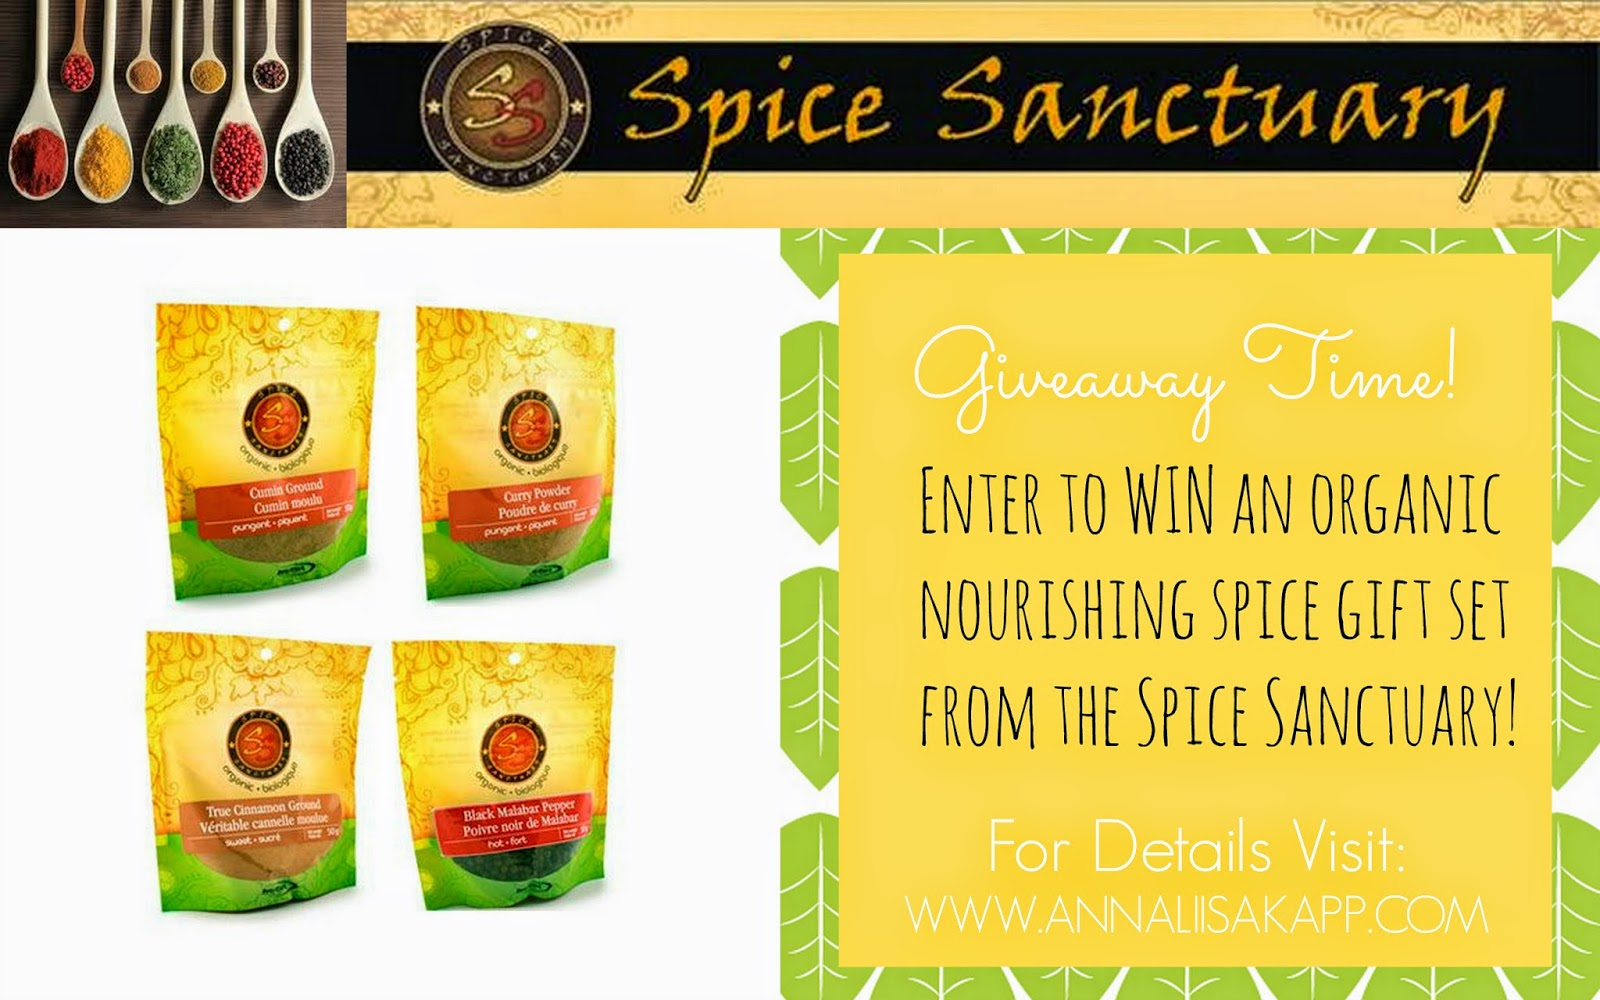 spice sanctuary organic spices giveaway